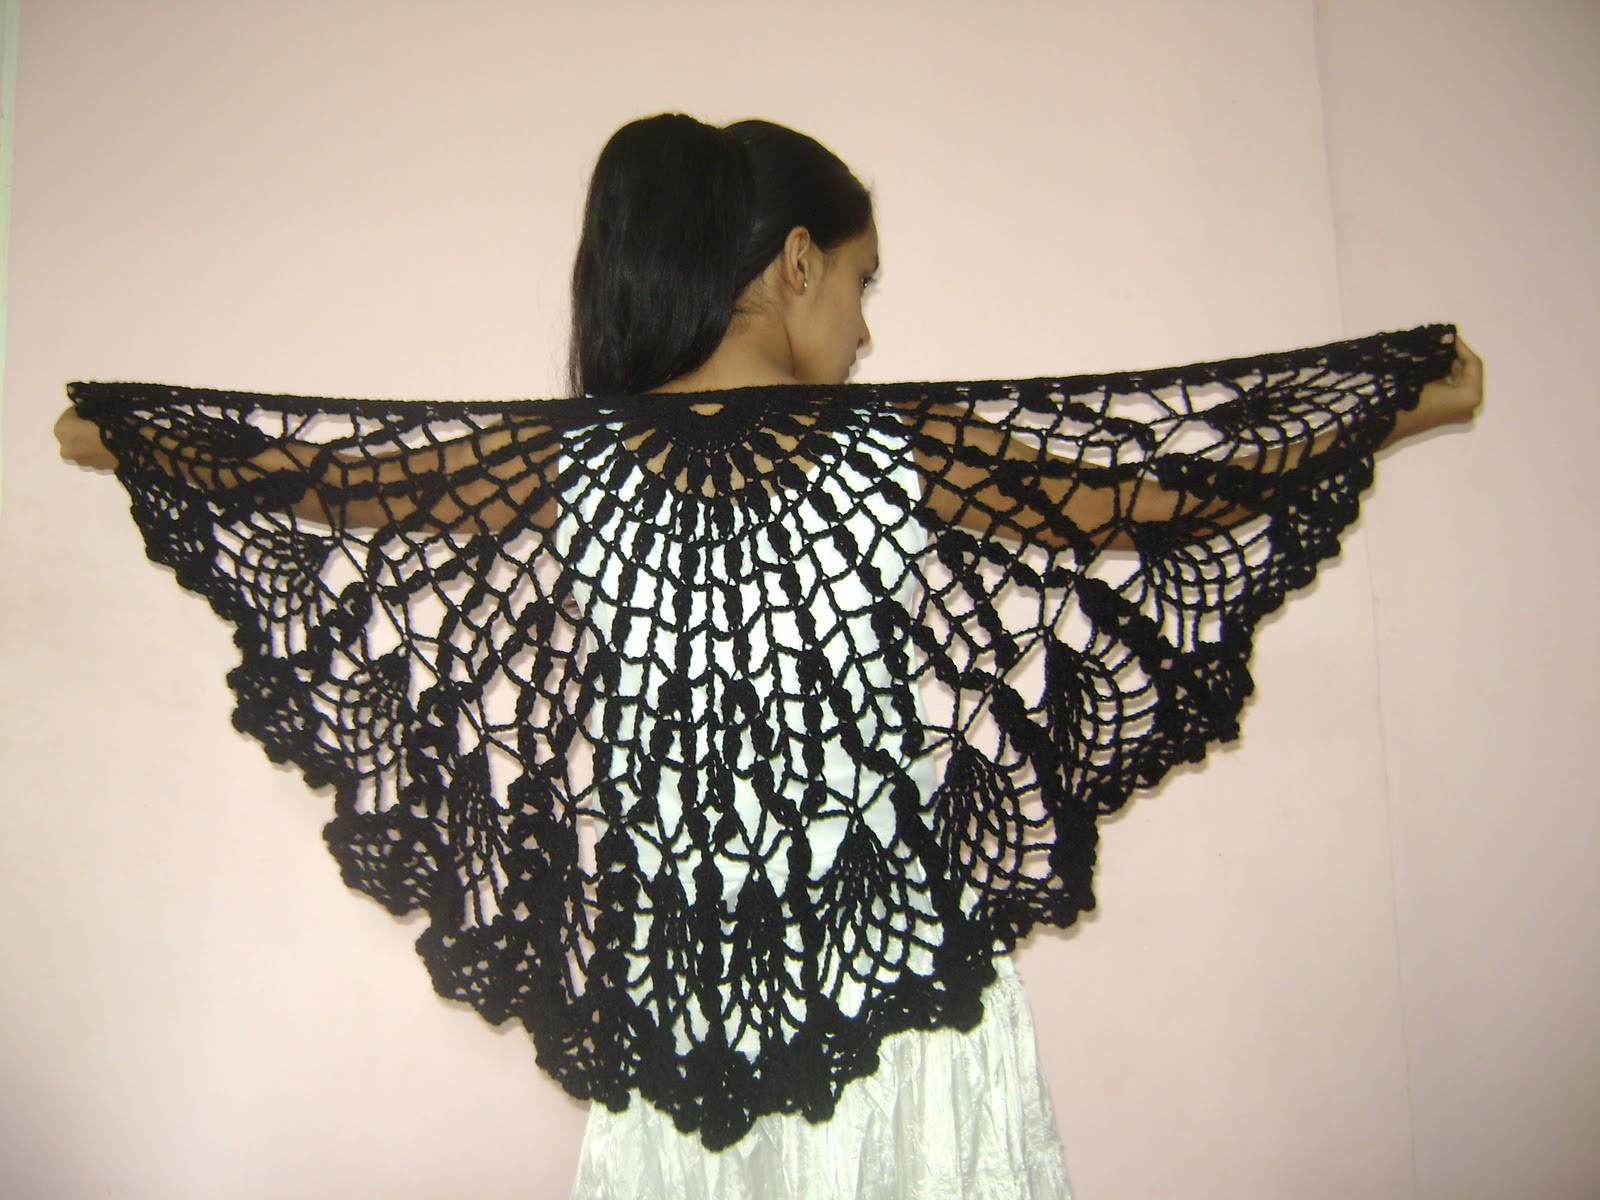 Crochet Lace Pattern Elegant Free Crocheted Shawl Patterns Of Gorgeous 50 Photos Crochet Lace Pattern